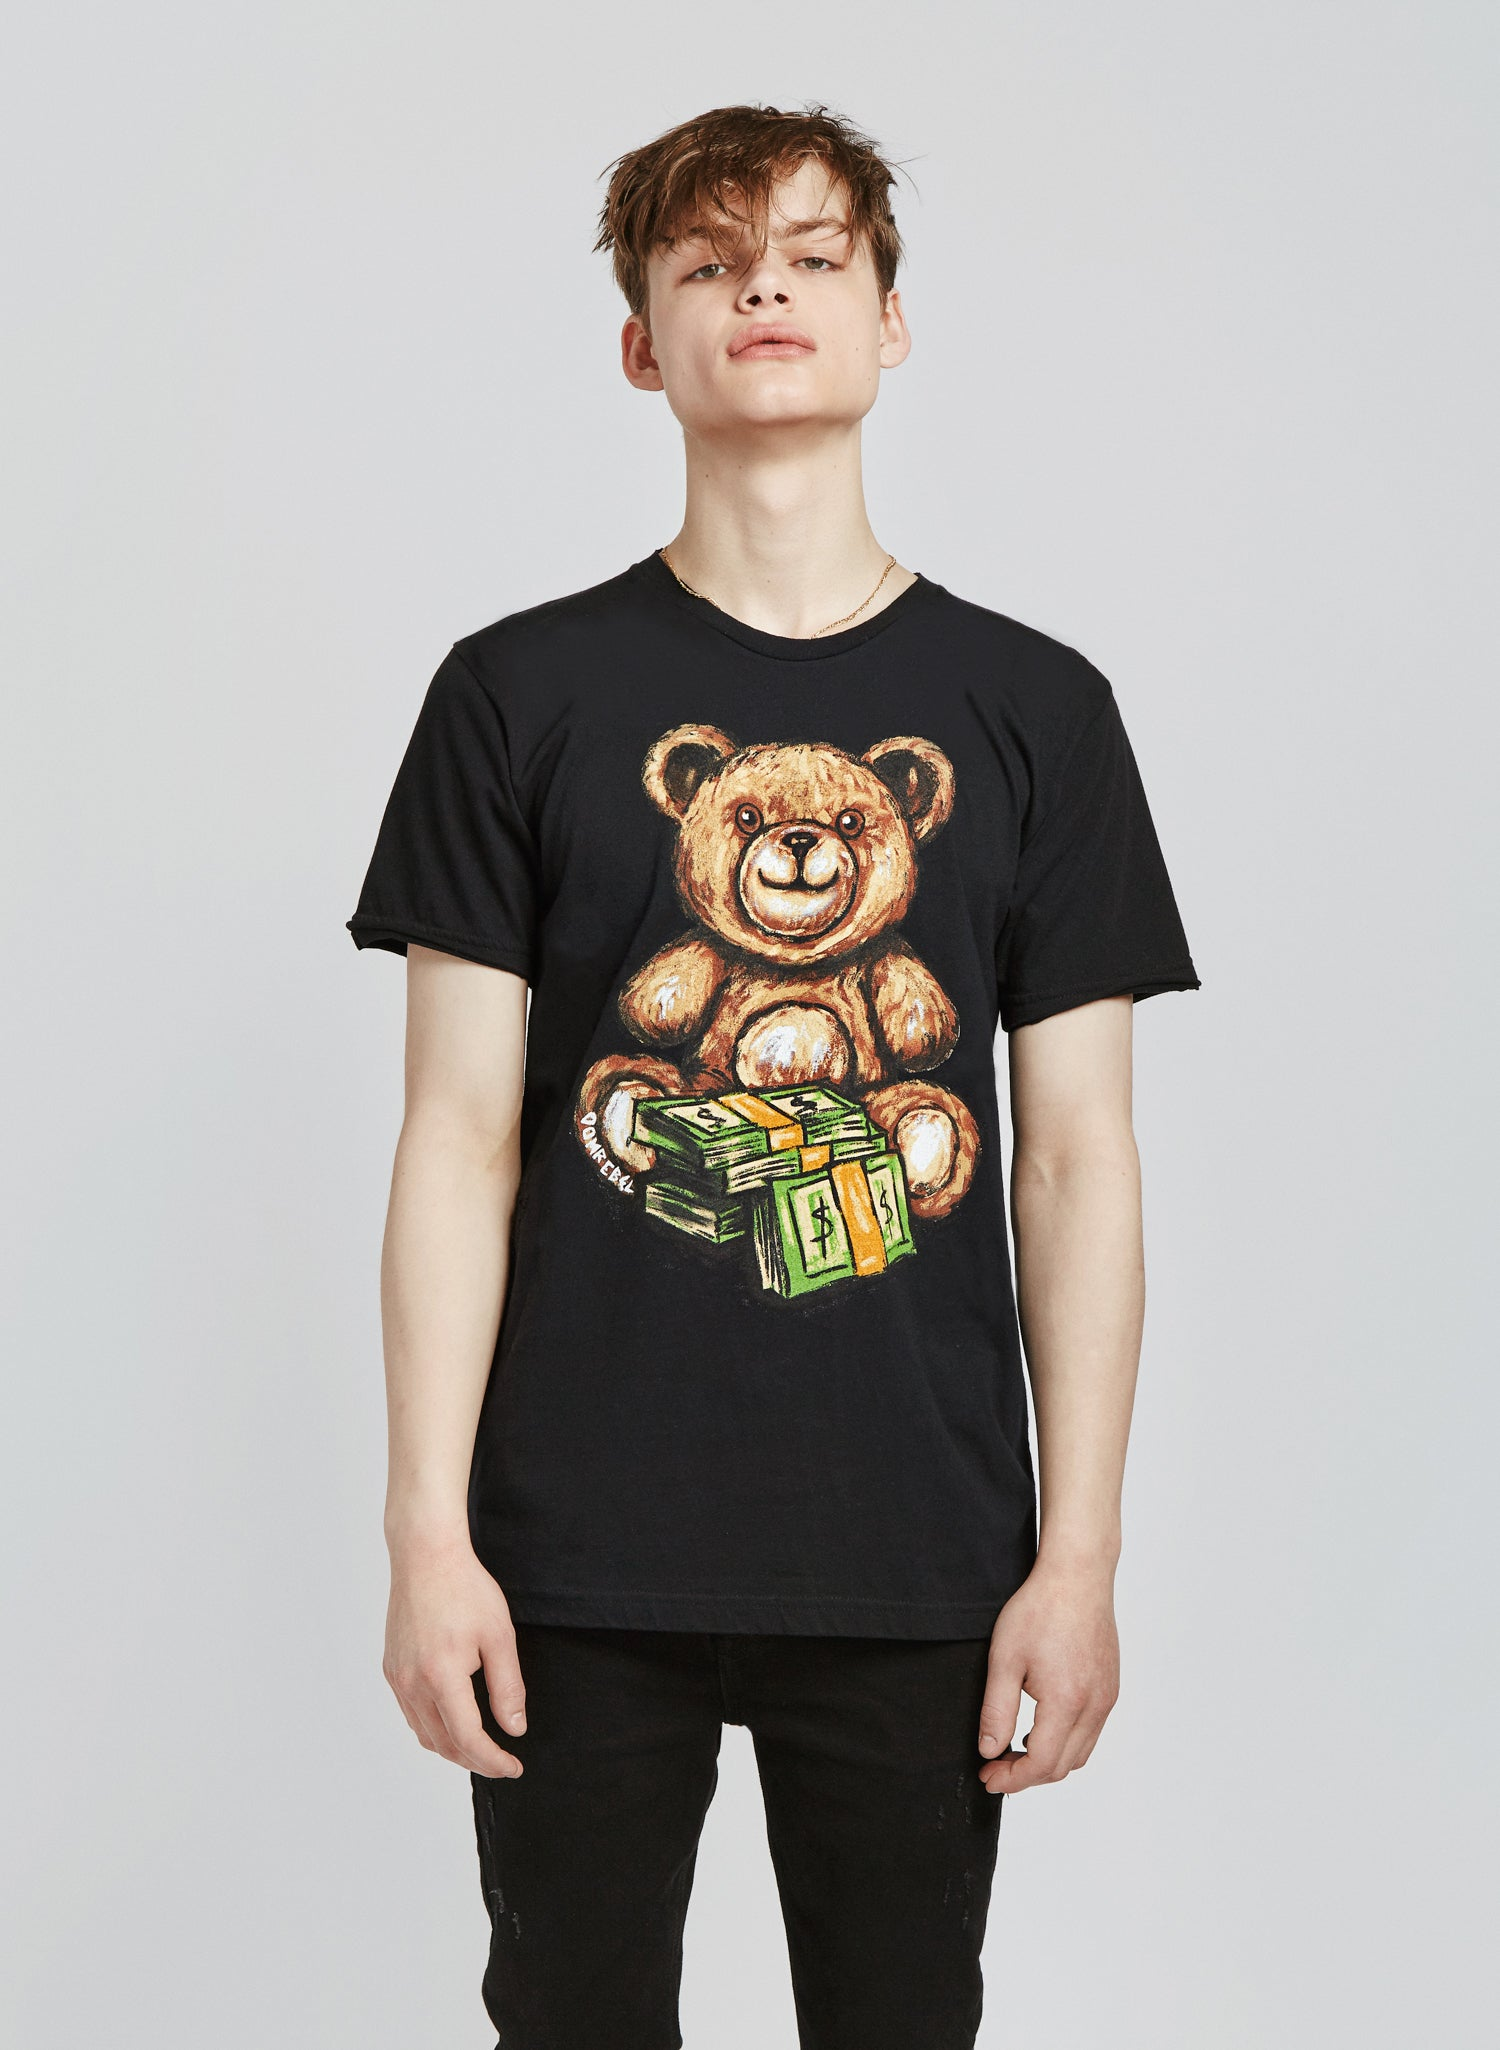 TEDDY MONEY T-SHIRT